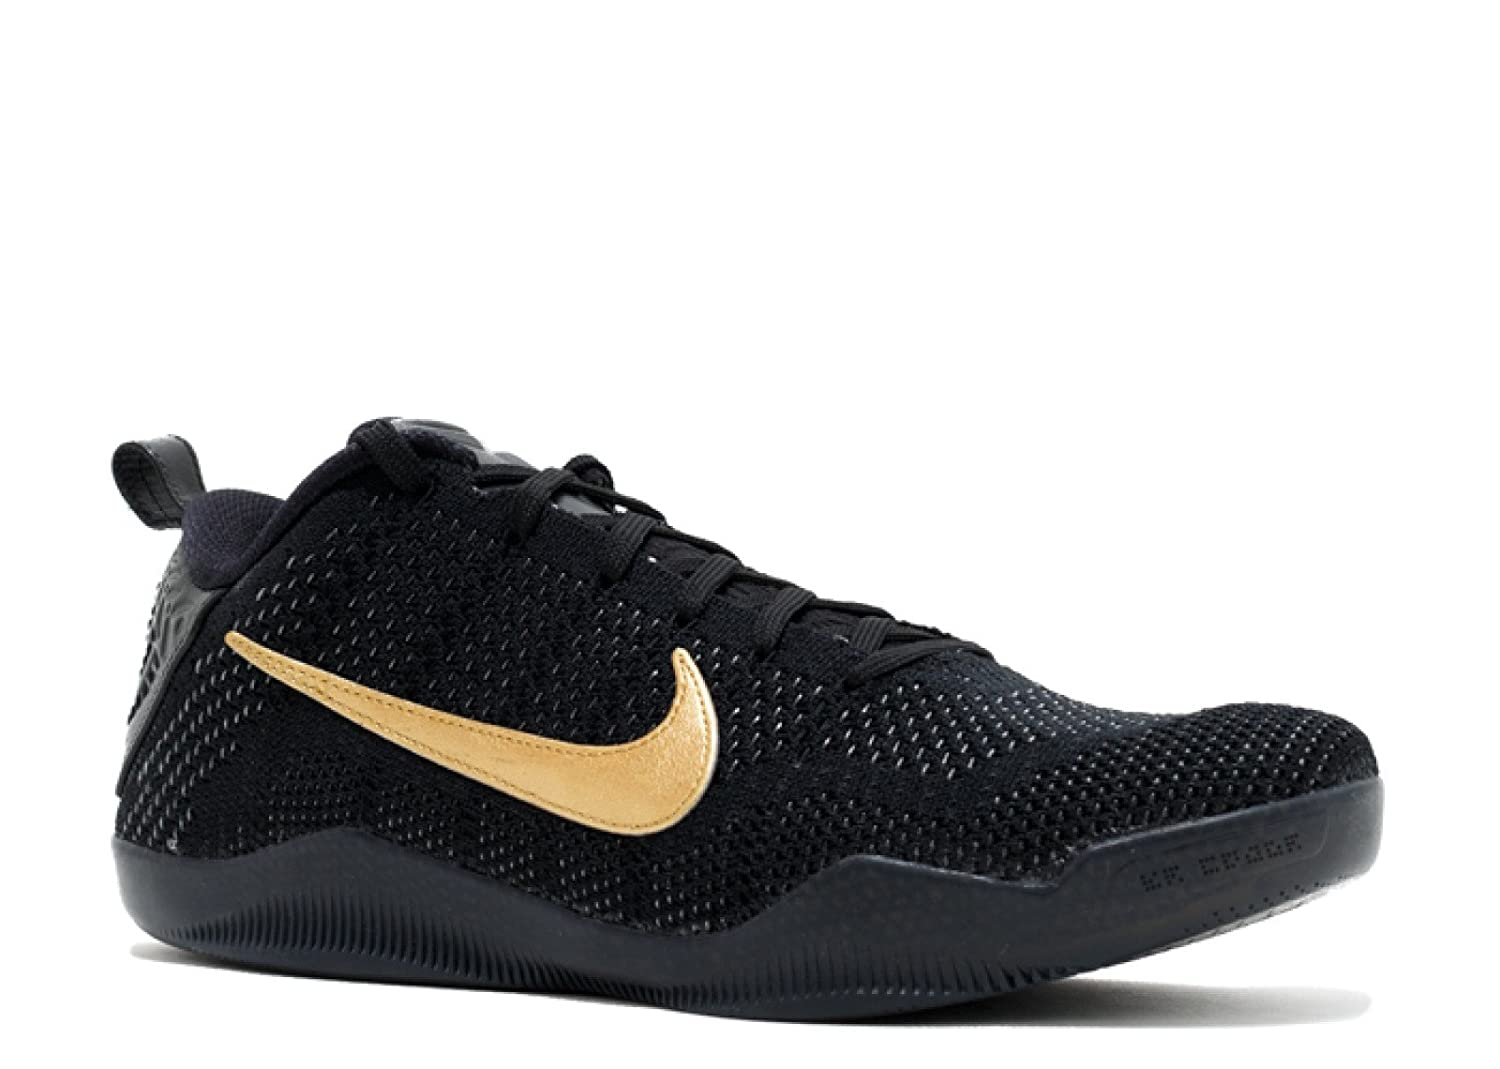 timeless design ccbc5 b9ba0 Amazon.com   Nike Kobe 11 FTB Black Black-Metallic Gold 869459-001